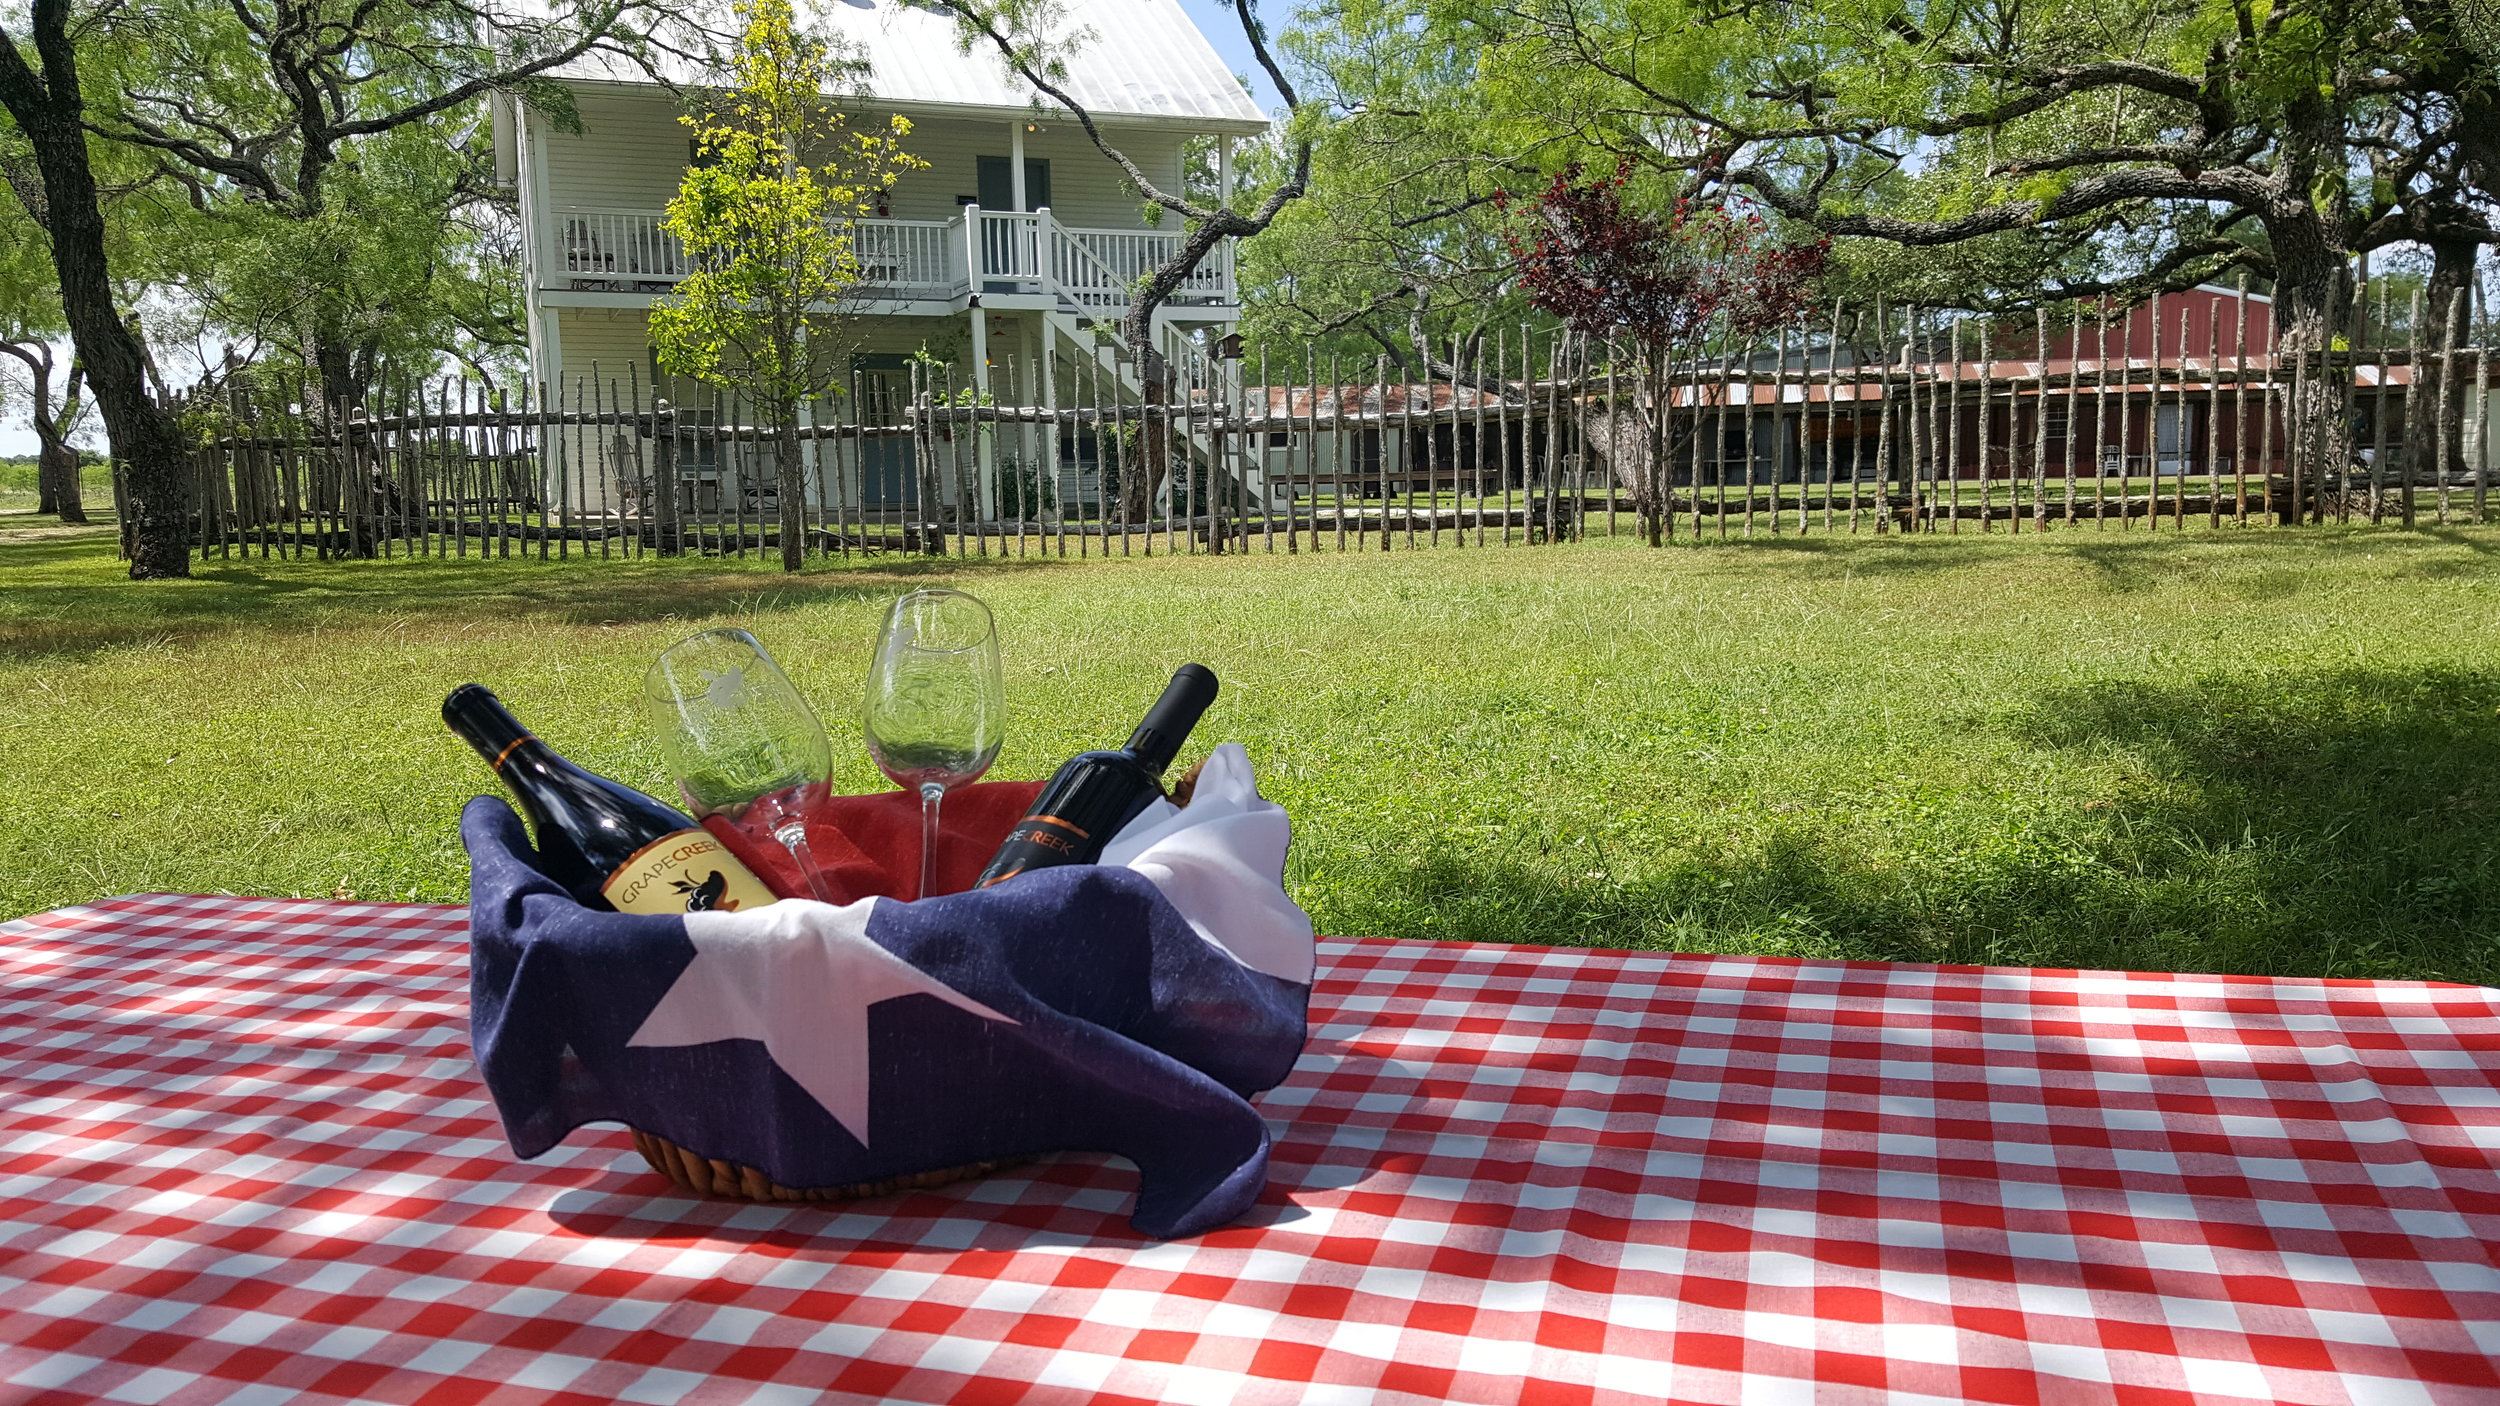 Full Moon Inn Bed and Breakfast Fredericksburg Texas